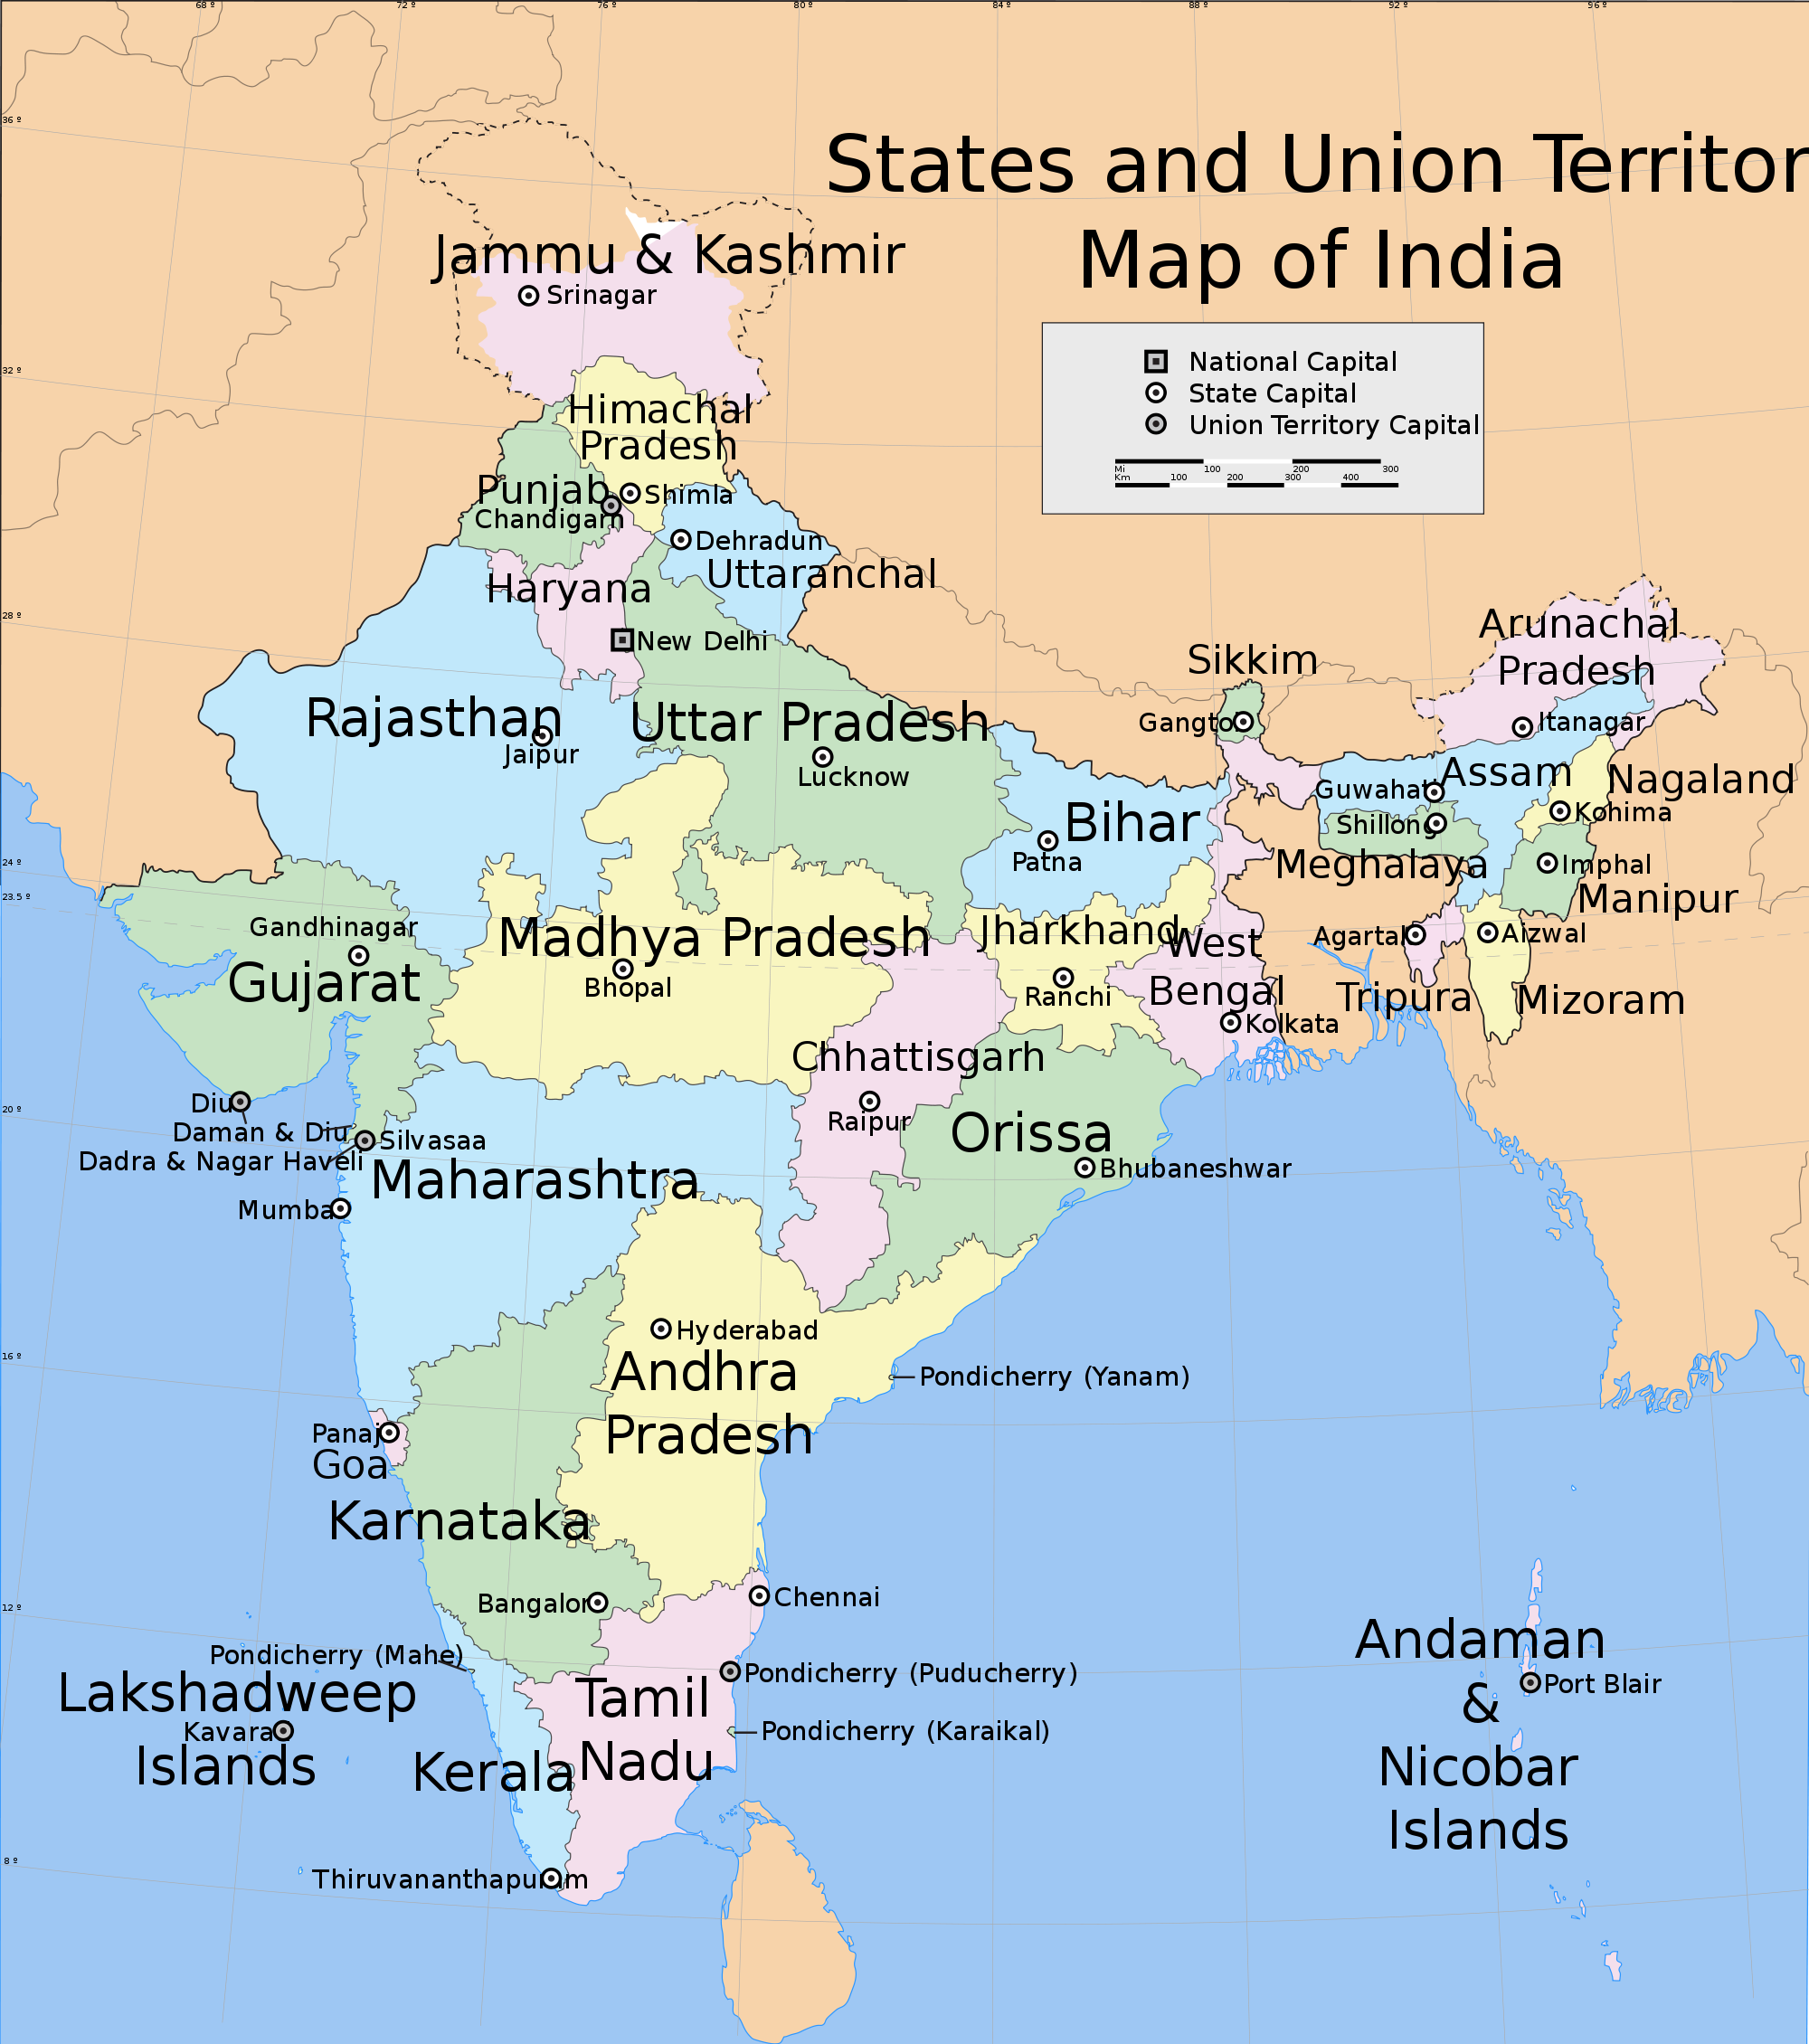 India states and union territories map | States, capitals ... on malaysia map, spain map, croatia map, arabian sea map, czech republic map, africa map, norway map, europe map, indian subcontinent map, china map, texas map, new zealand map, korea map, canada map, cuba map, maharashtra map, california map, portugal map, australia map, andhra pradesh map, cyprus map, argentina map, ireland map, germany map, time zone map, egypt map, karnataka map, iceland map, poland map, brazil map, japan map, italy map, sri lanka map, russia map, greece map, thailand map, france map,